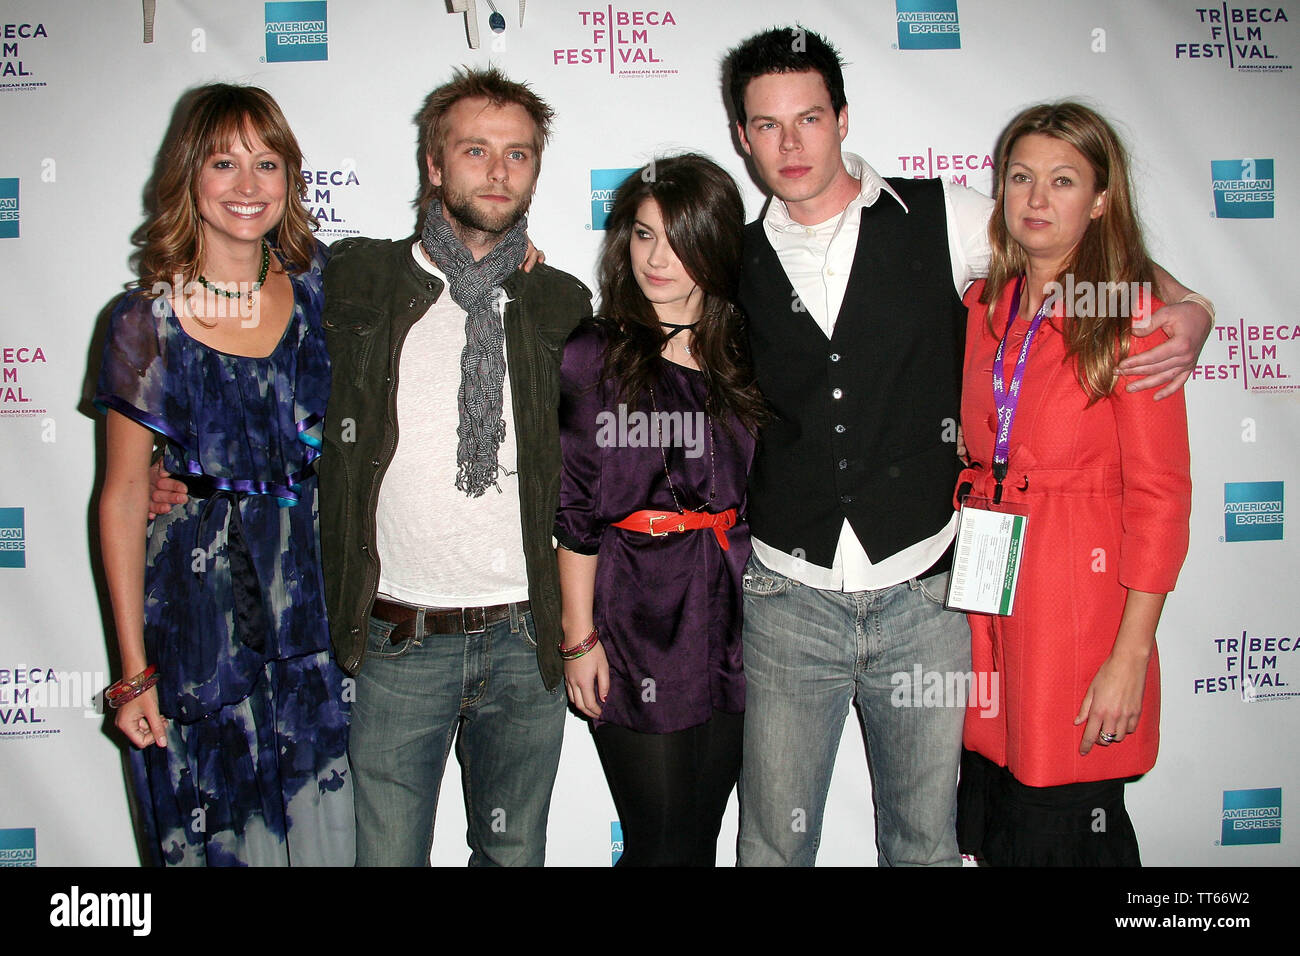 New York, USA. 26 April, 2008. Alexie Gilmore, Joe Anderson, Eve Hewson, David P. Emrich, Erica Dunton at the Premiere Of 'The 27 Club' At The 2008 Tribeca Film Festival at AMC Theater. Credit: Steve Mack/Alamy - Stock Image